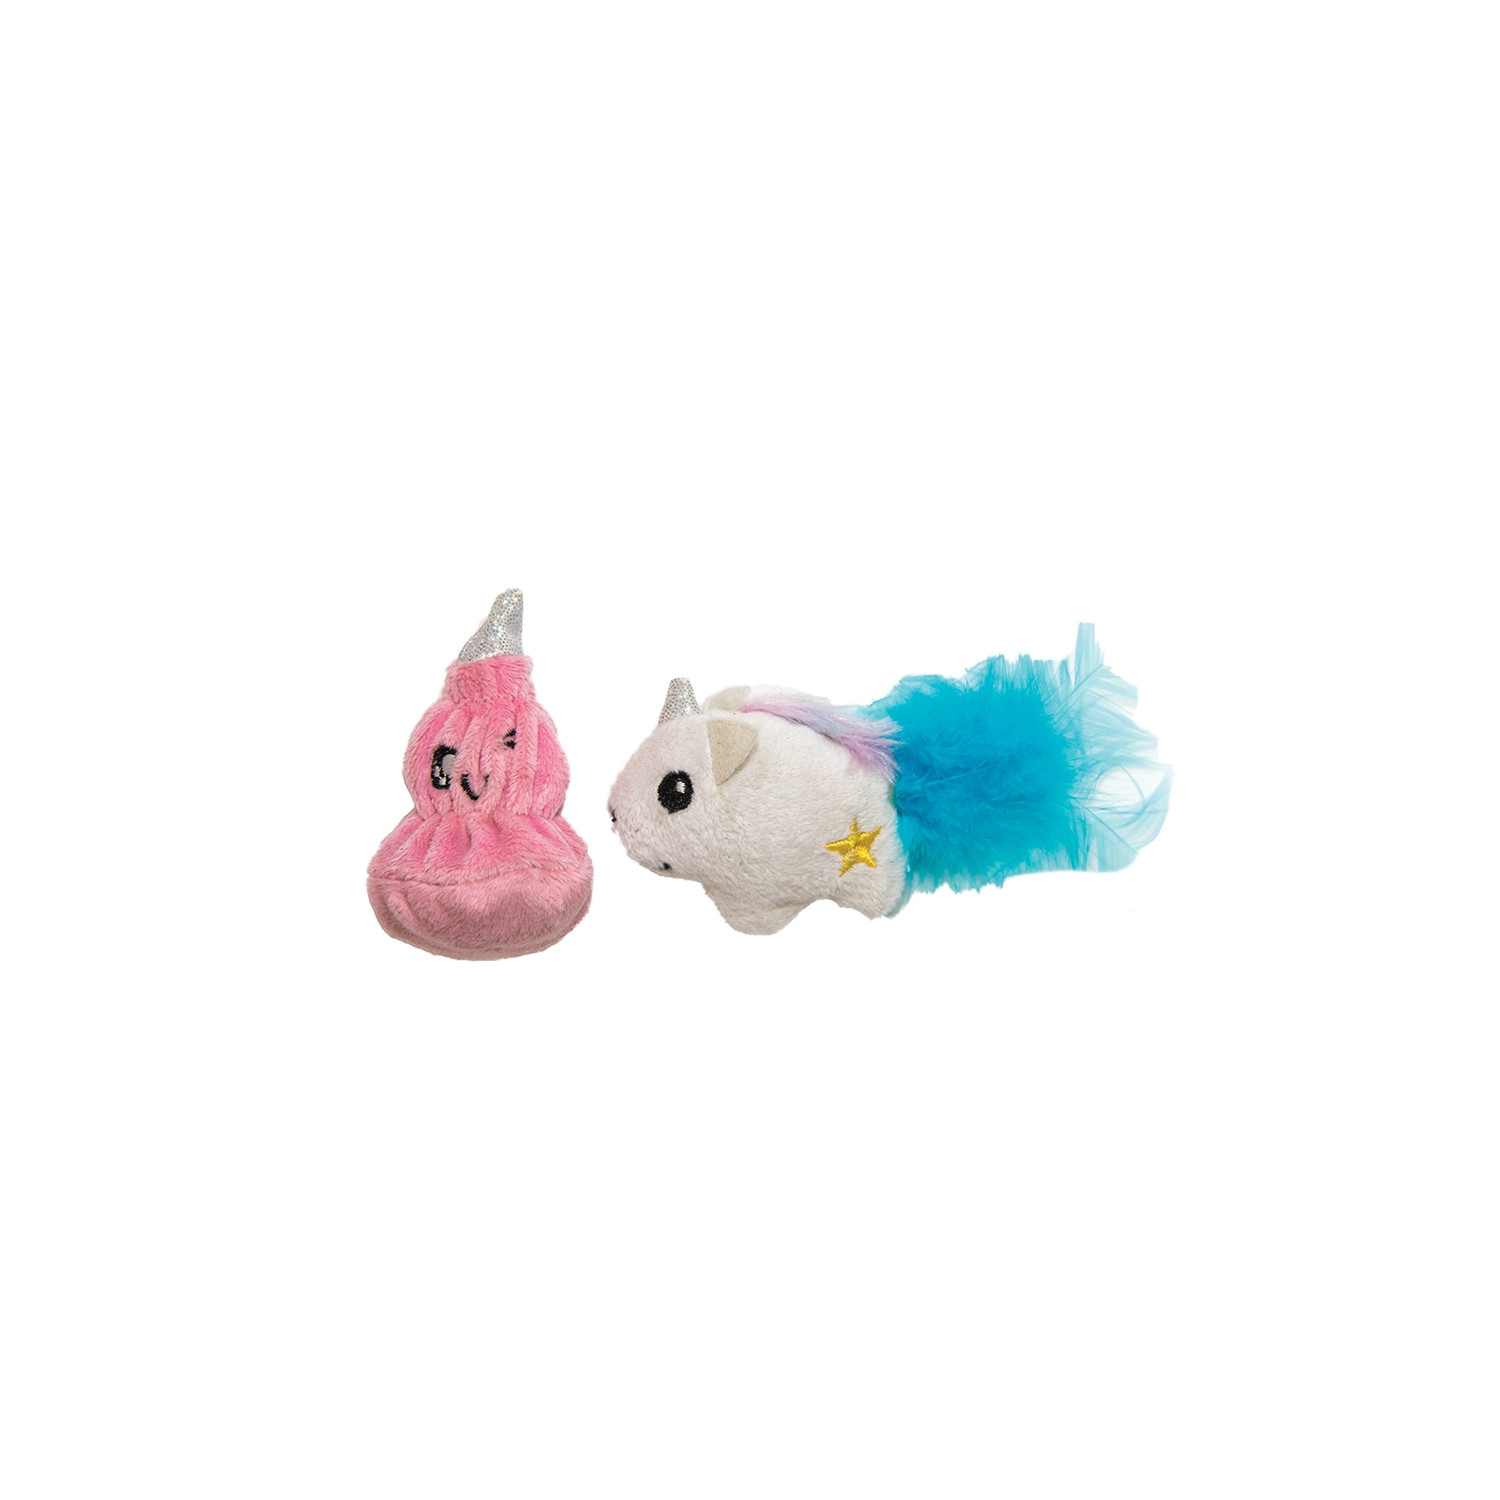 Unicorn poo - Petstages